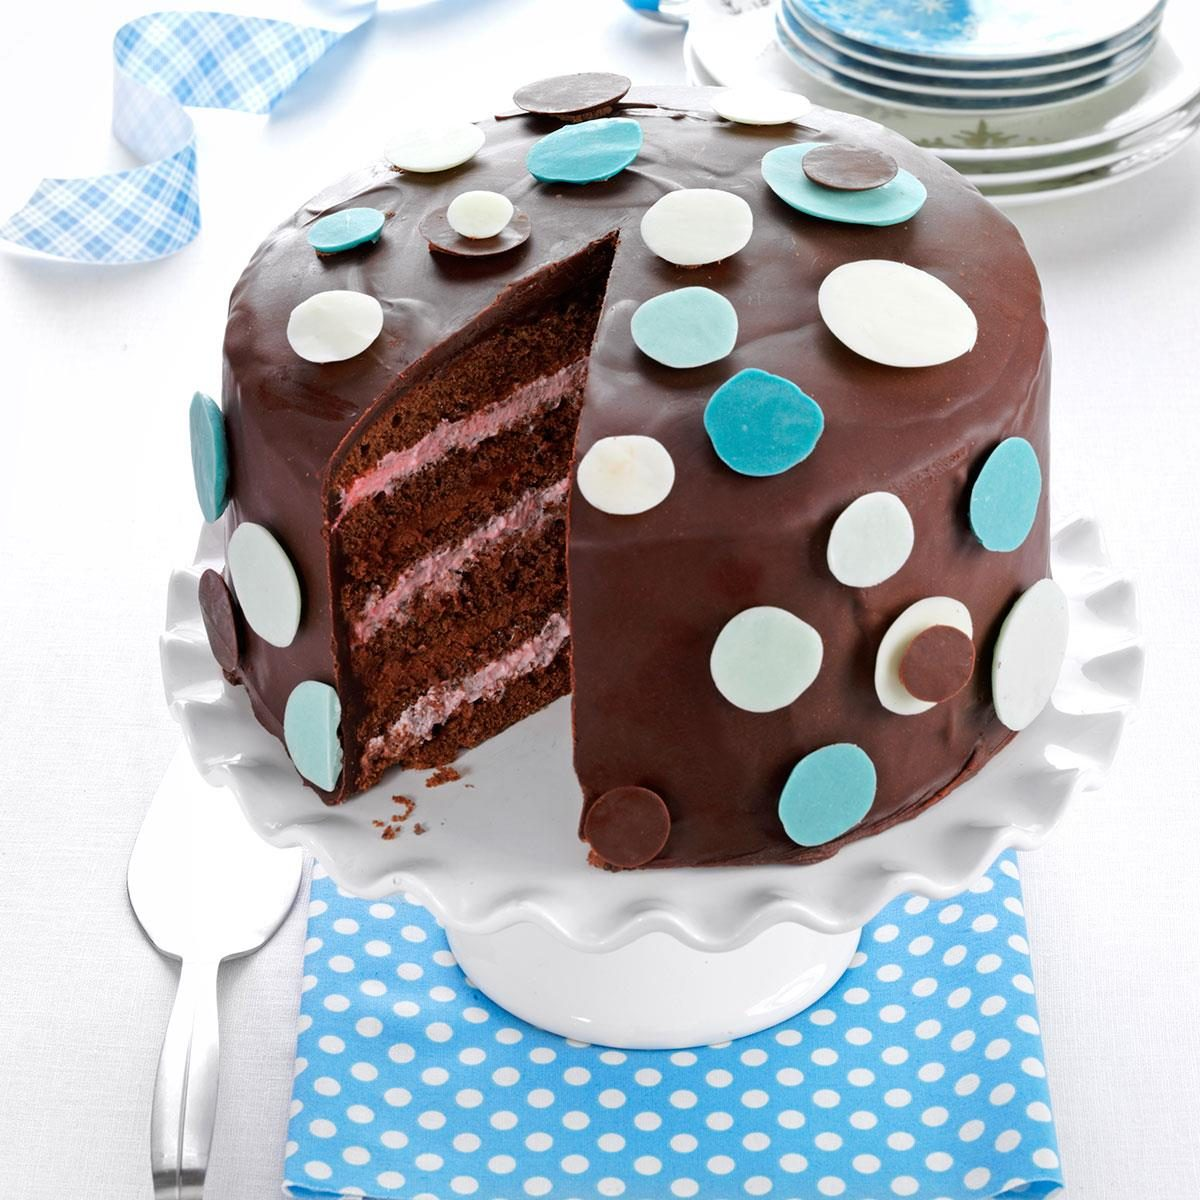 How Can I Decorate Cake At Home : How To Decorate Chocolate Cake At Home - Drip Cake For The ...